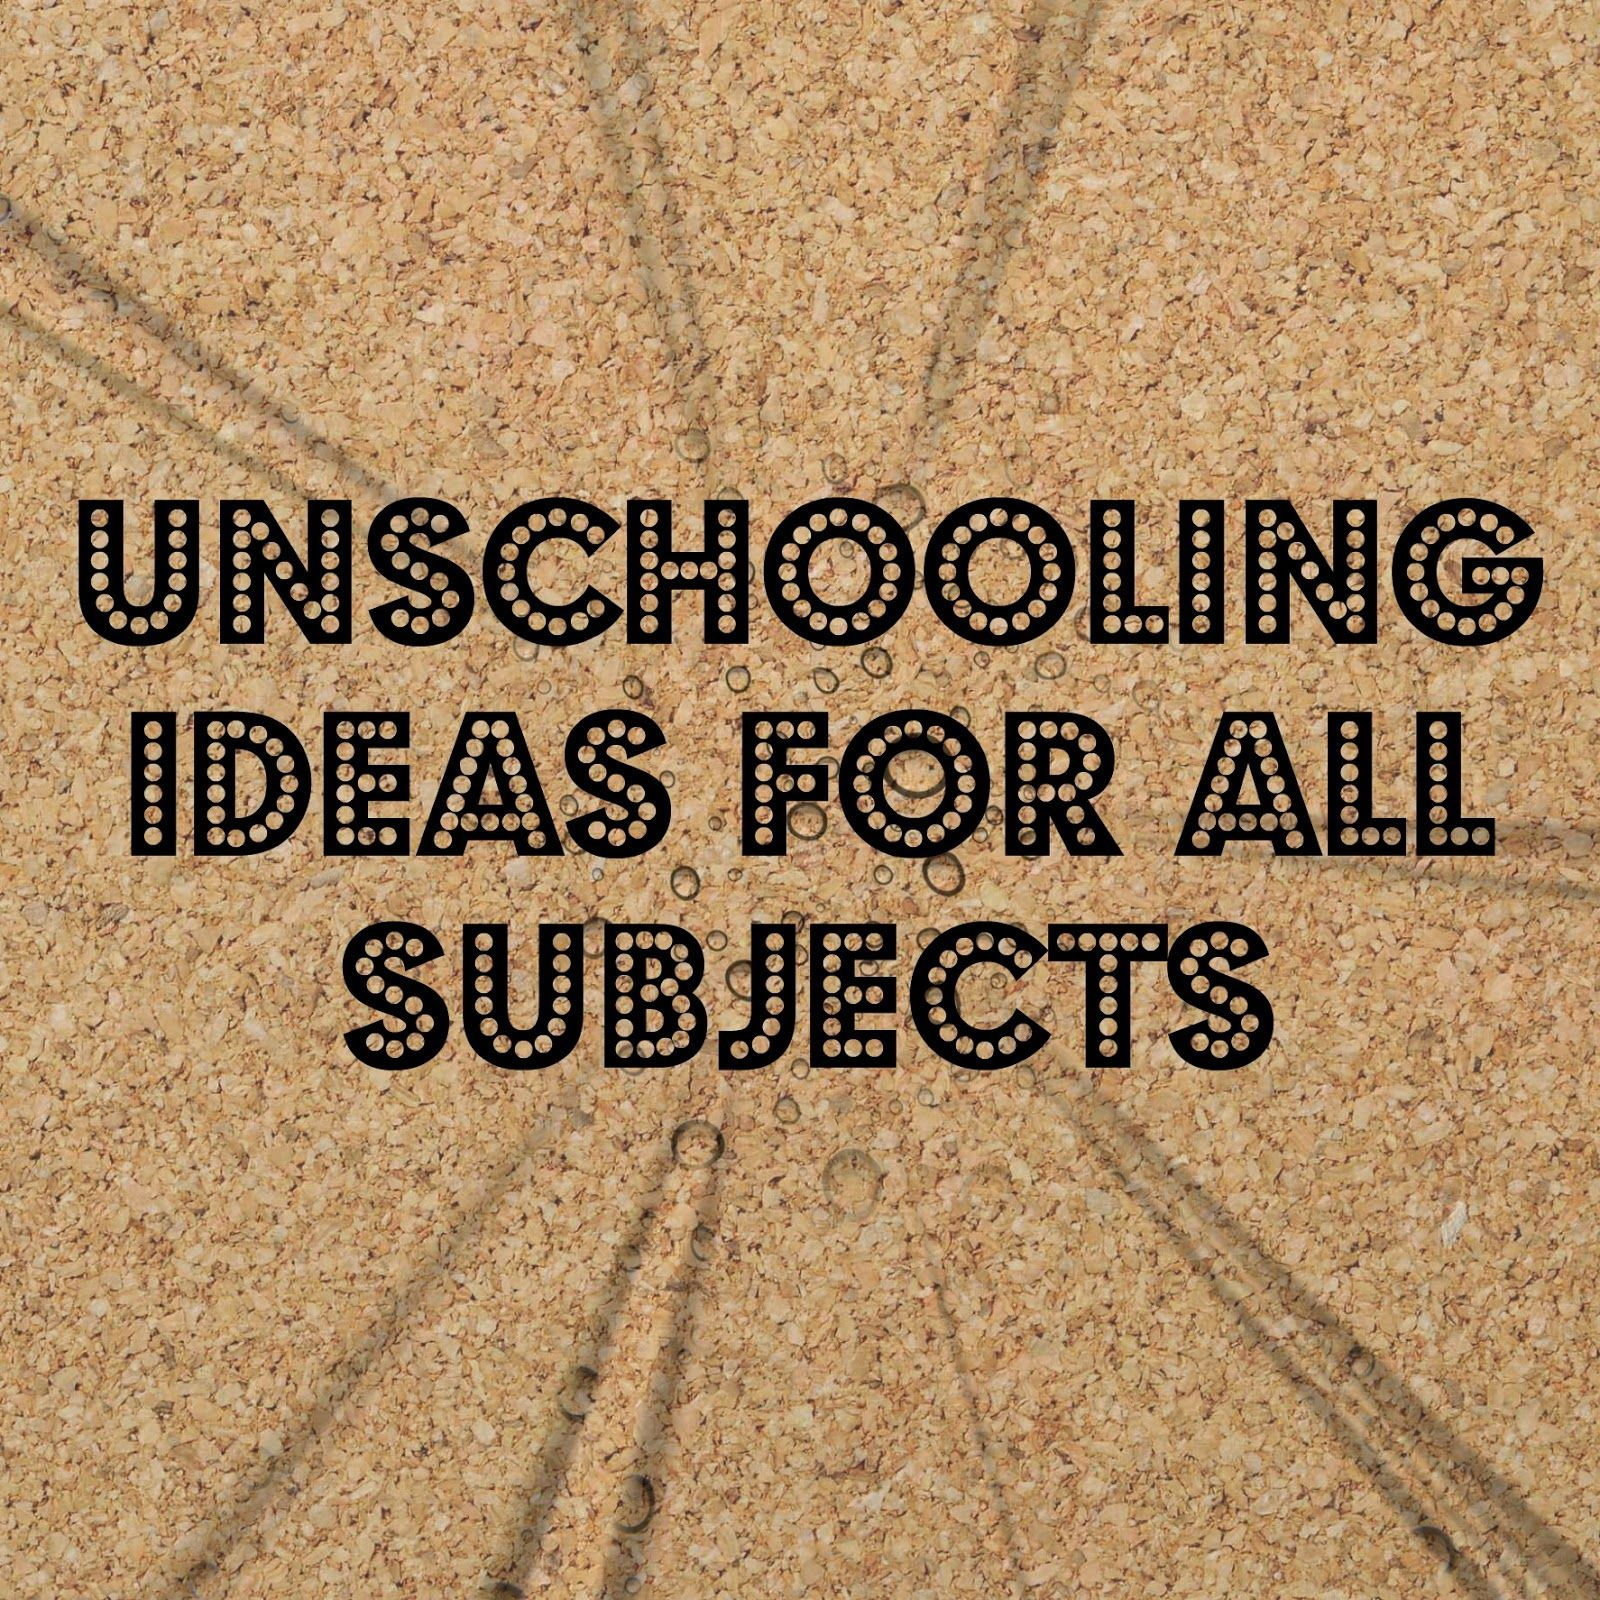 Unschooling Ideas for all subjects  Homeschool education